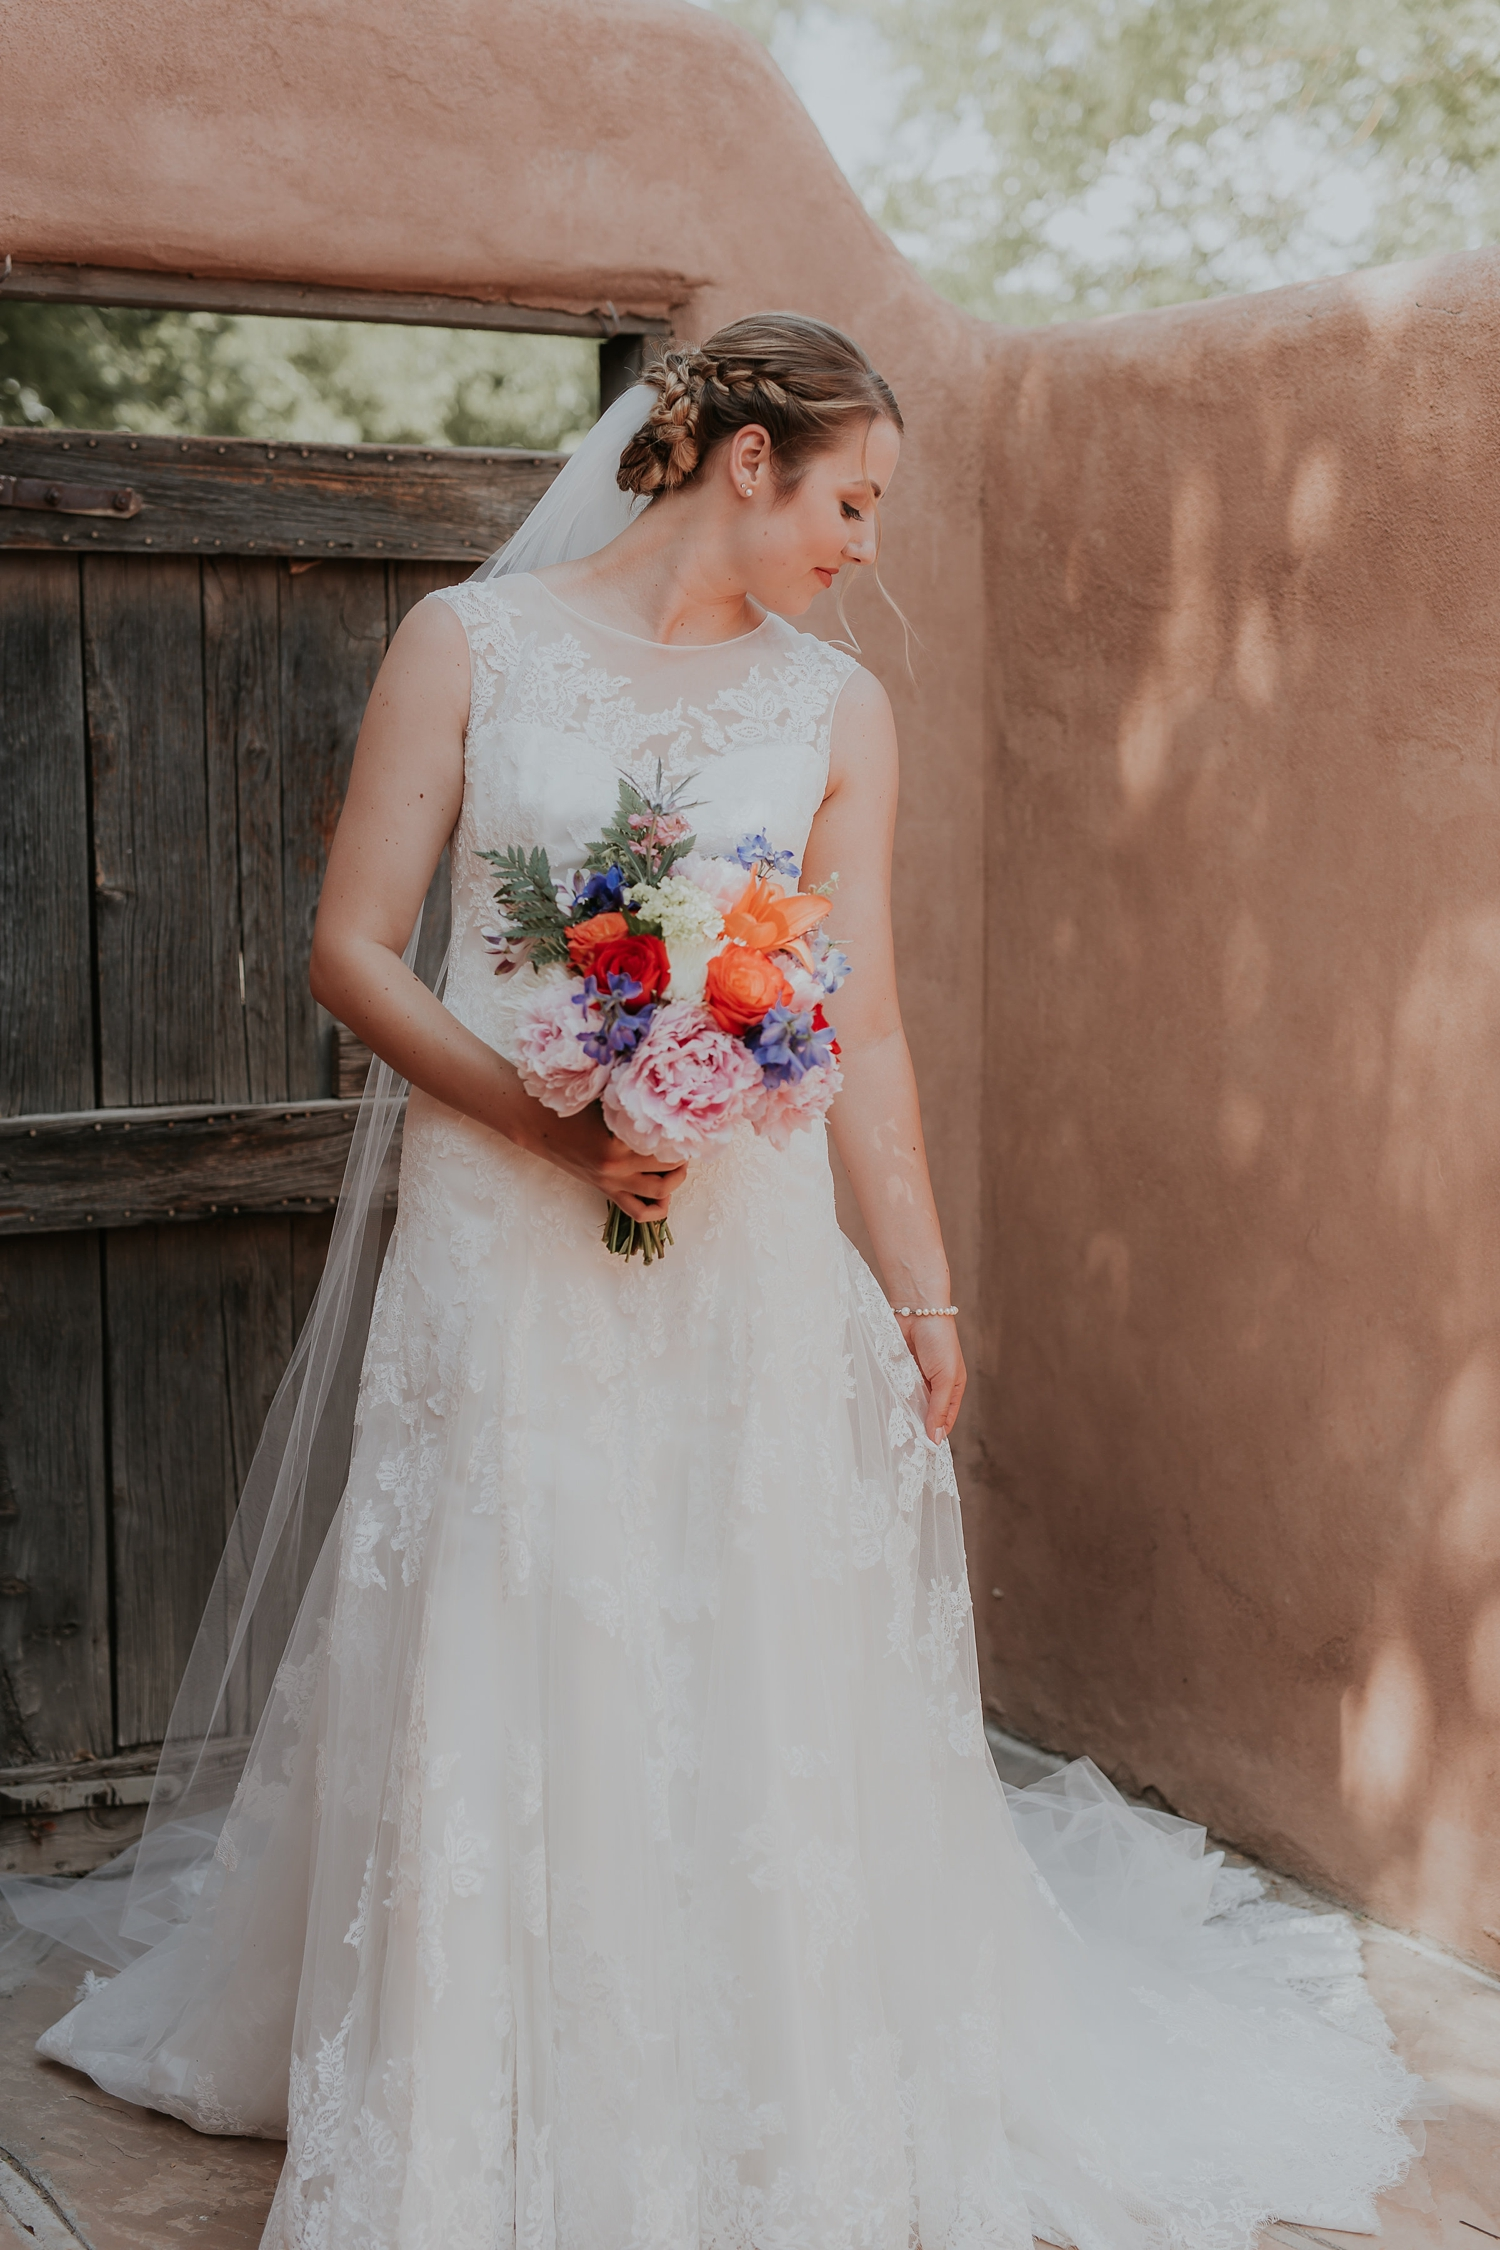 Alicia+lucia+photography+-+albuquerque+wedding+photographer+-+santa+fe+wedding+photography+-+new+mexico+wedding+photographer+-+summer+wedding+gowns+-+summer+wedding+style_0034.jpg